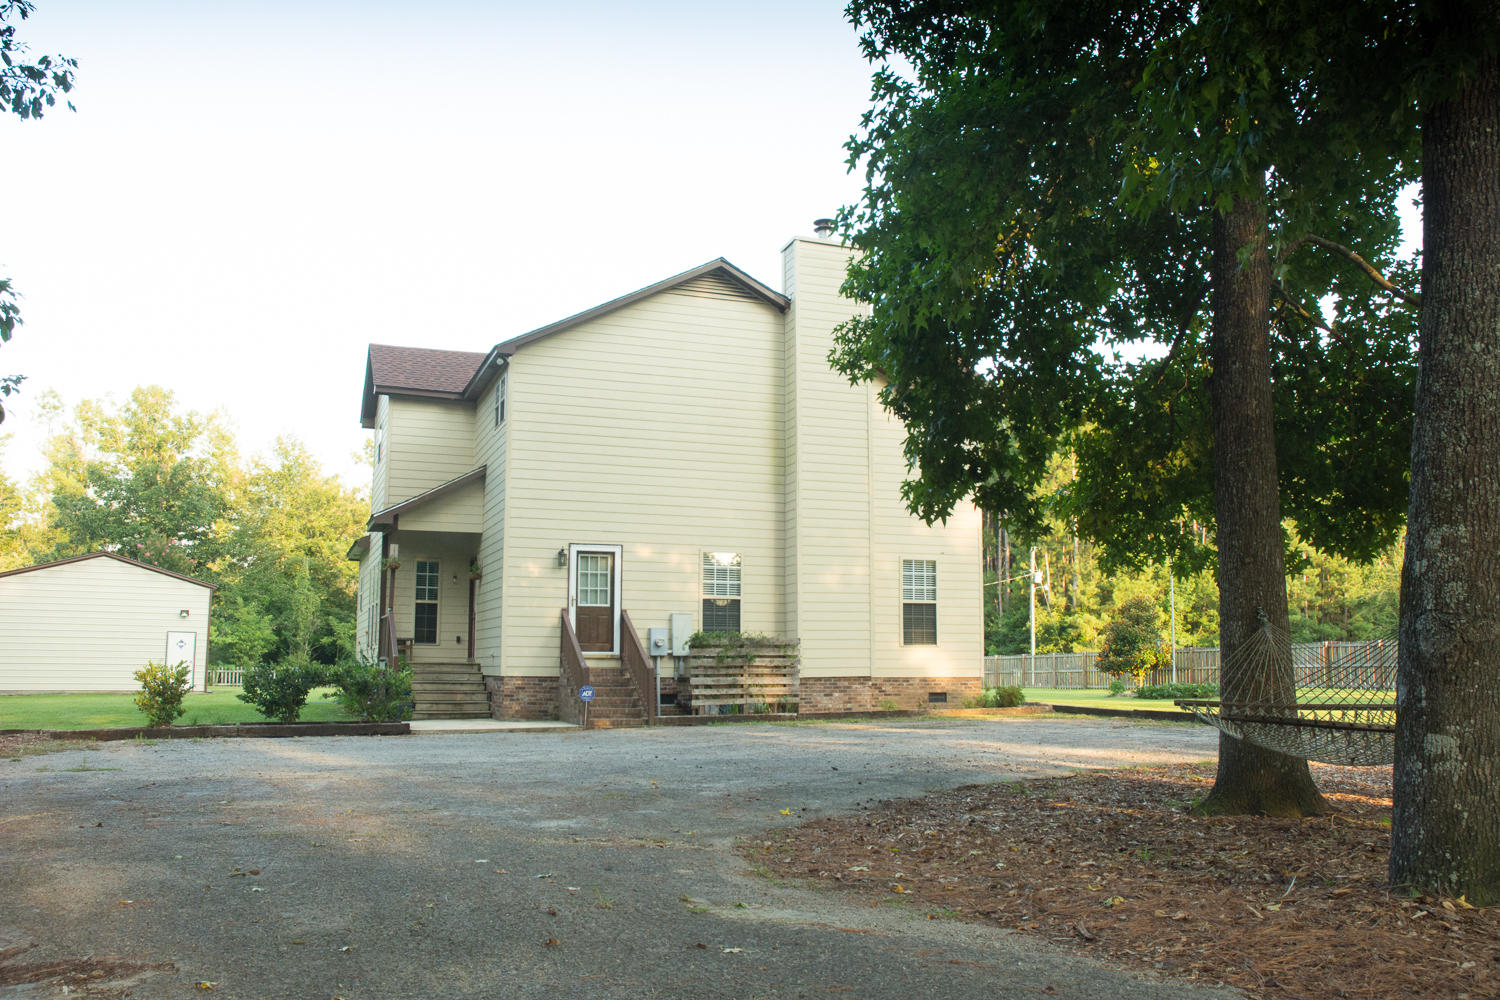 Photo of 1594 E Church St, Bonneau, SC 29431